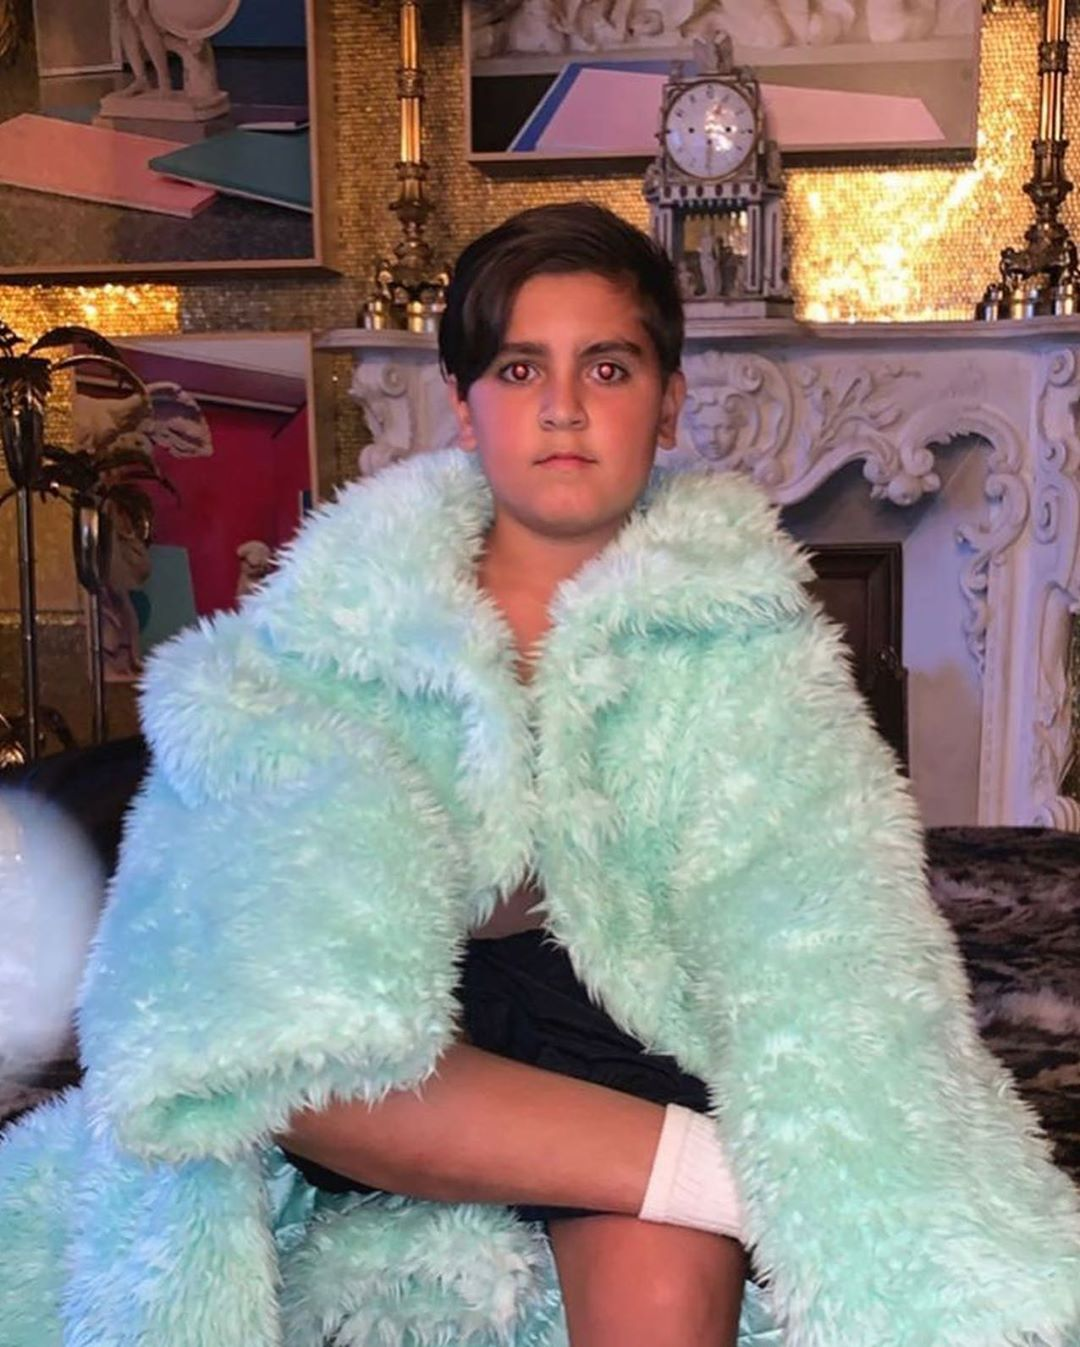 Mason Disick Sits Seriously Wrapped in Turquoise Coat